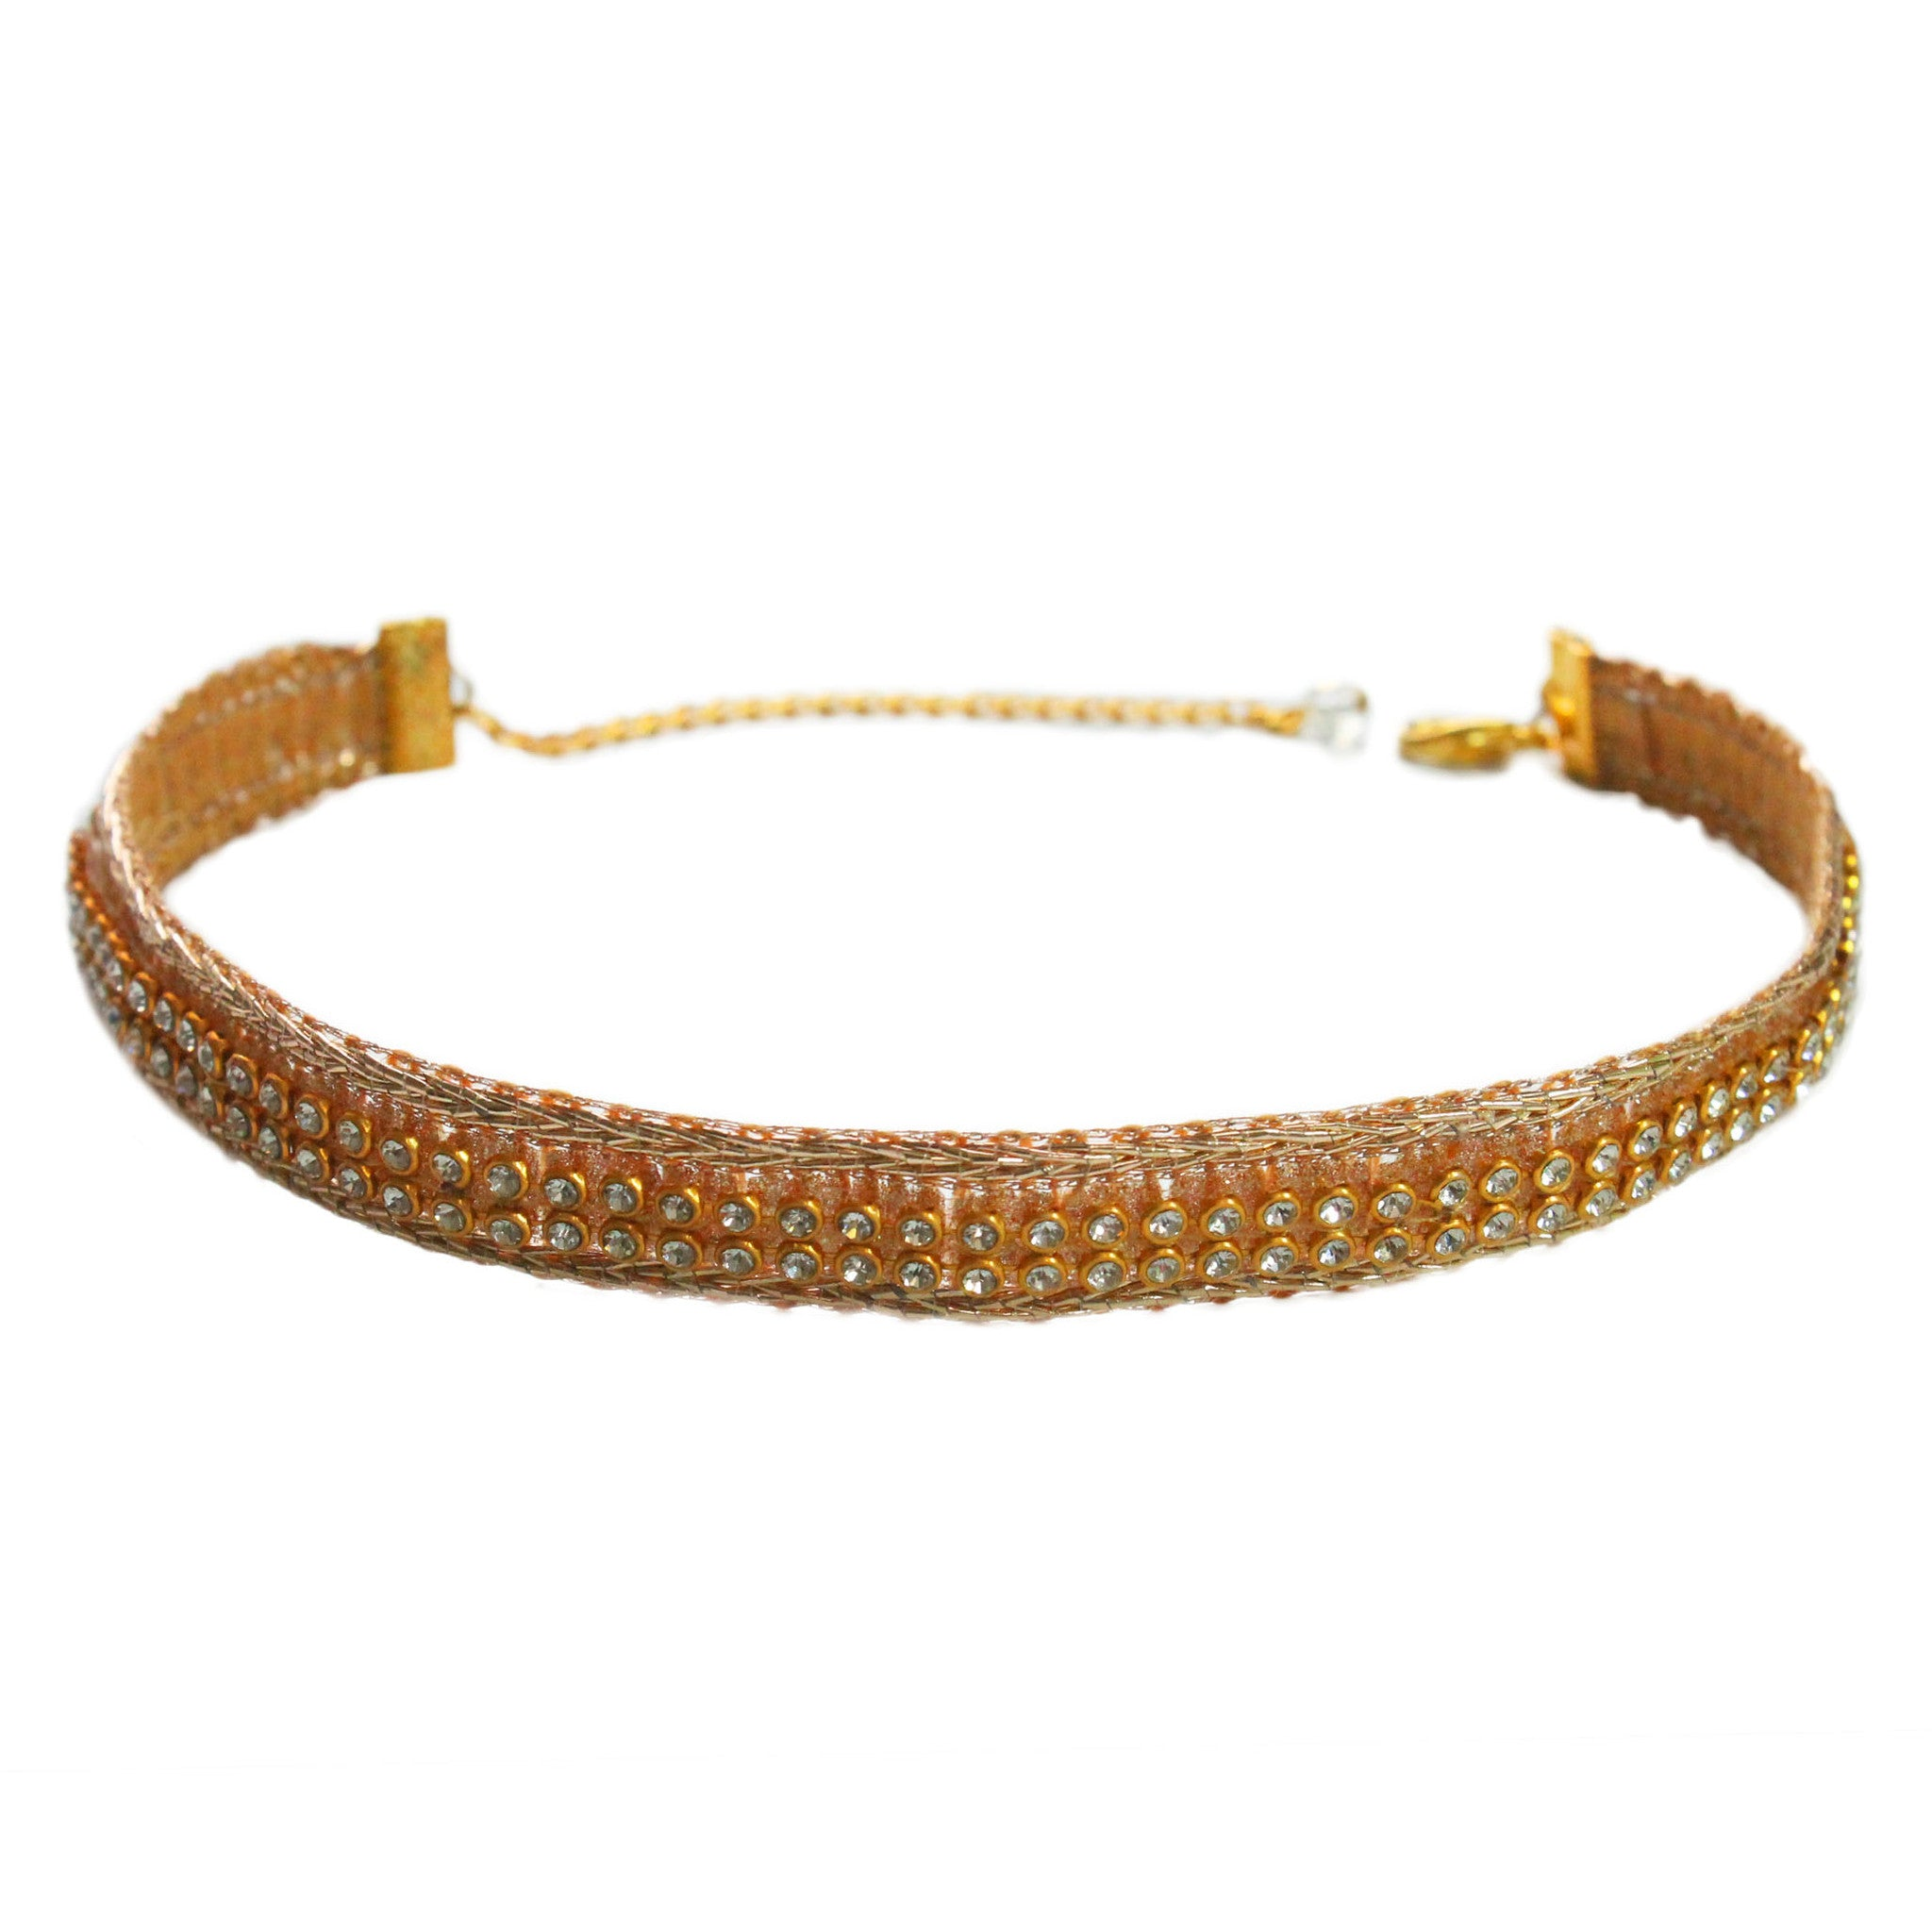 The Golden Onyx Choker Necklace - Crochita - 1